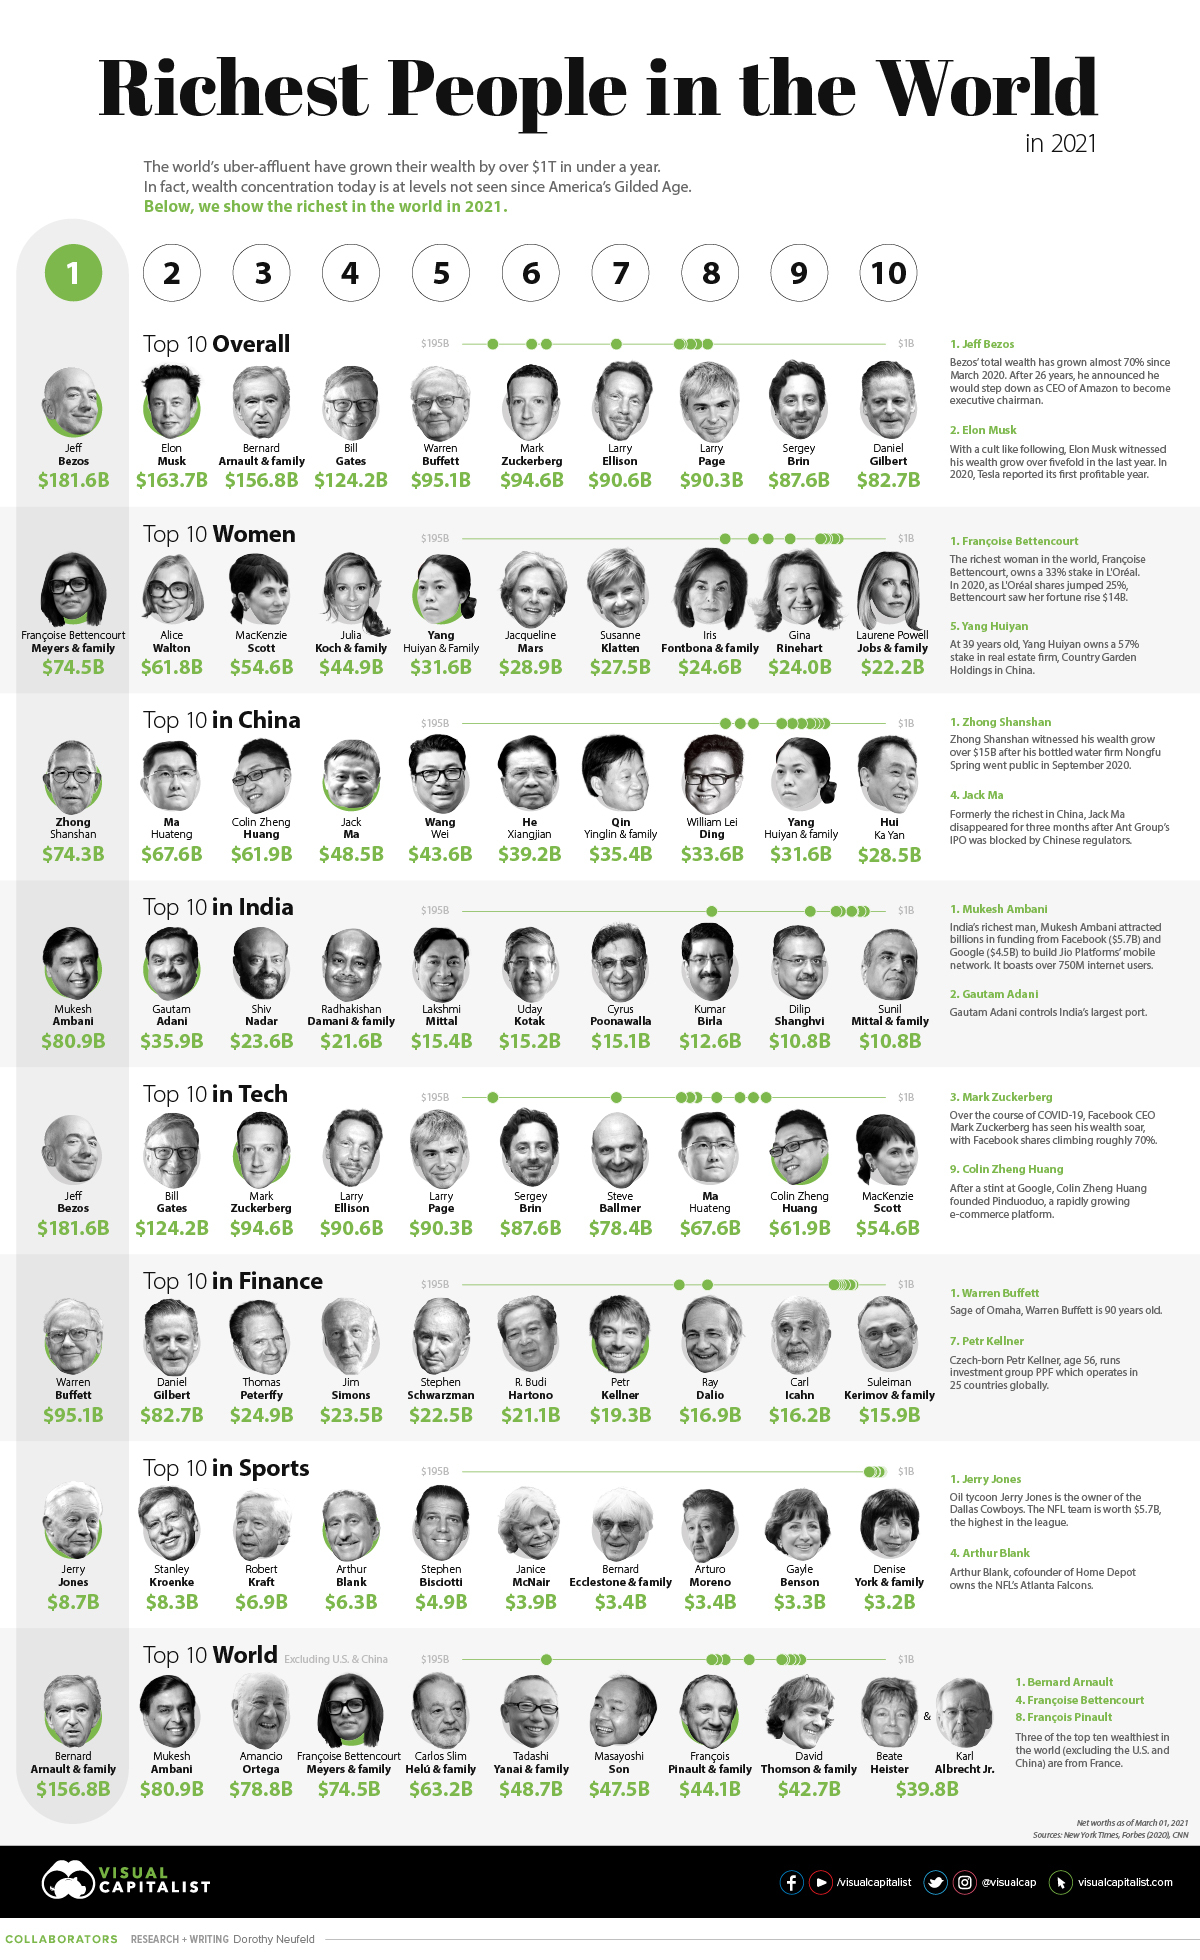 The Richest People in the World in 2021 #infographic #Money #Richest People #World #infographics